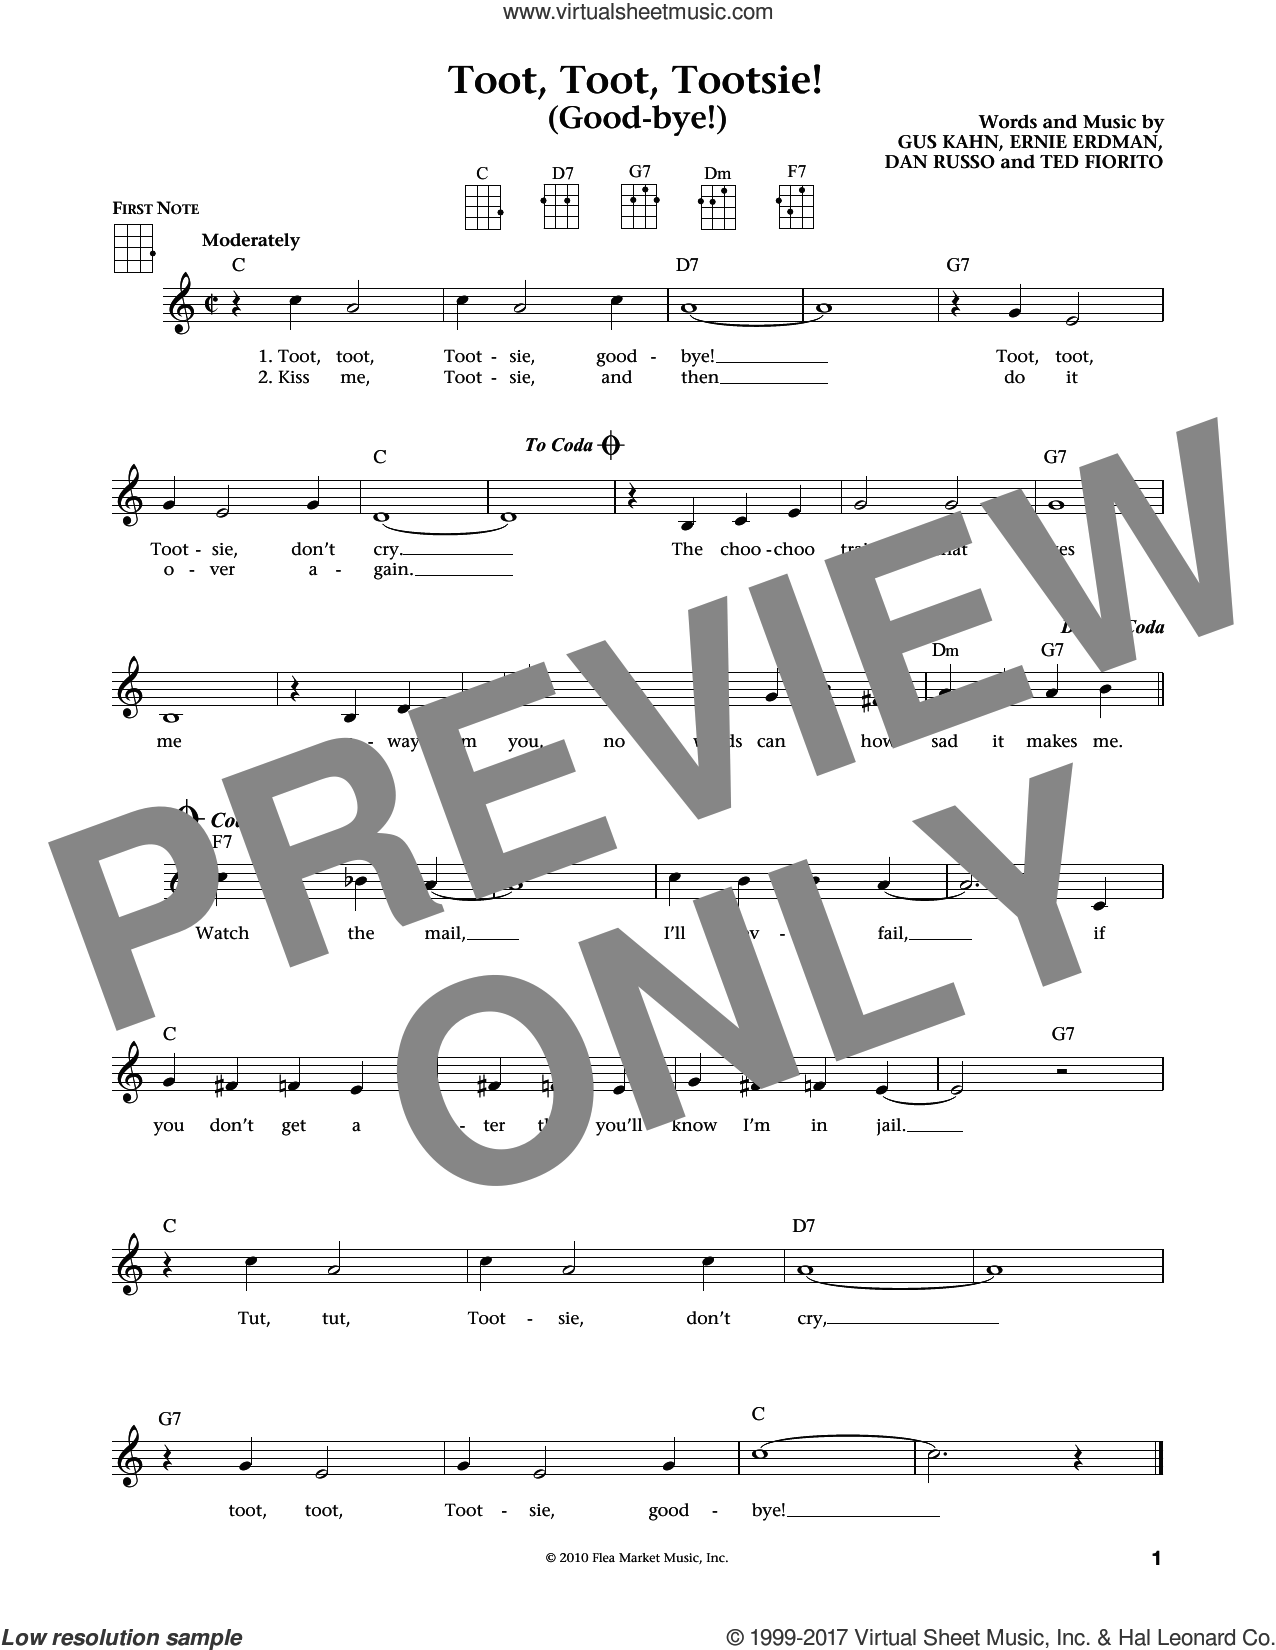 Toot, Toot, Tootsie! (Good-bye!) sheet music for ukulele by Gus Kahn and Ernie Erdman. Score Image Preview.